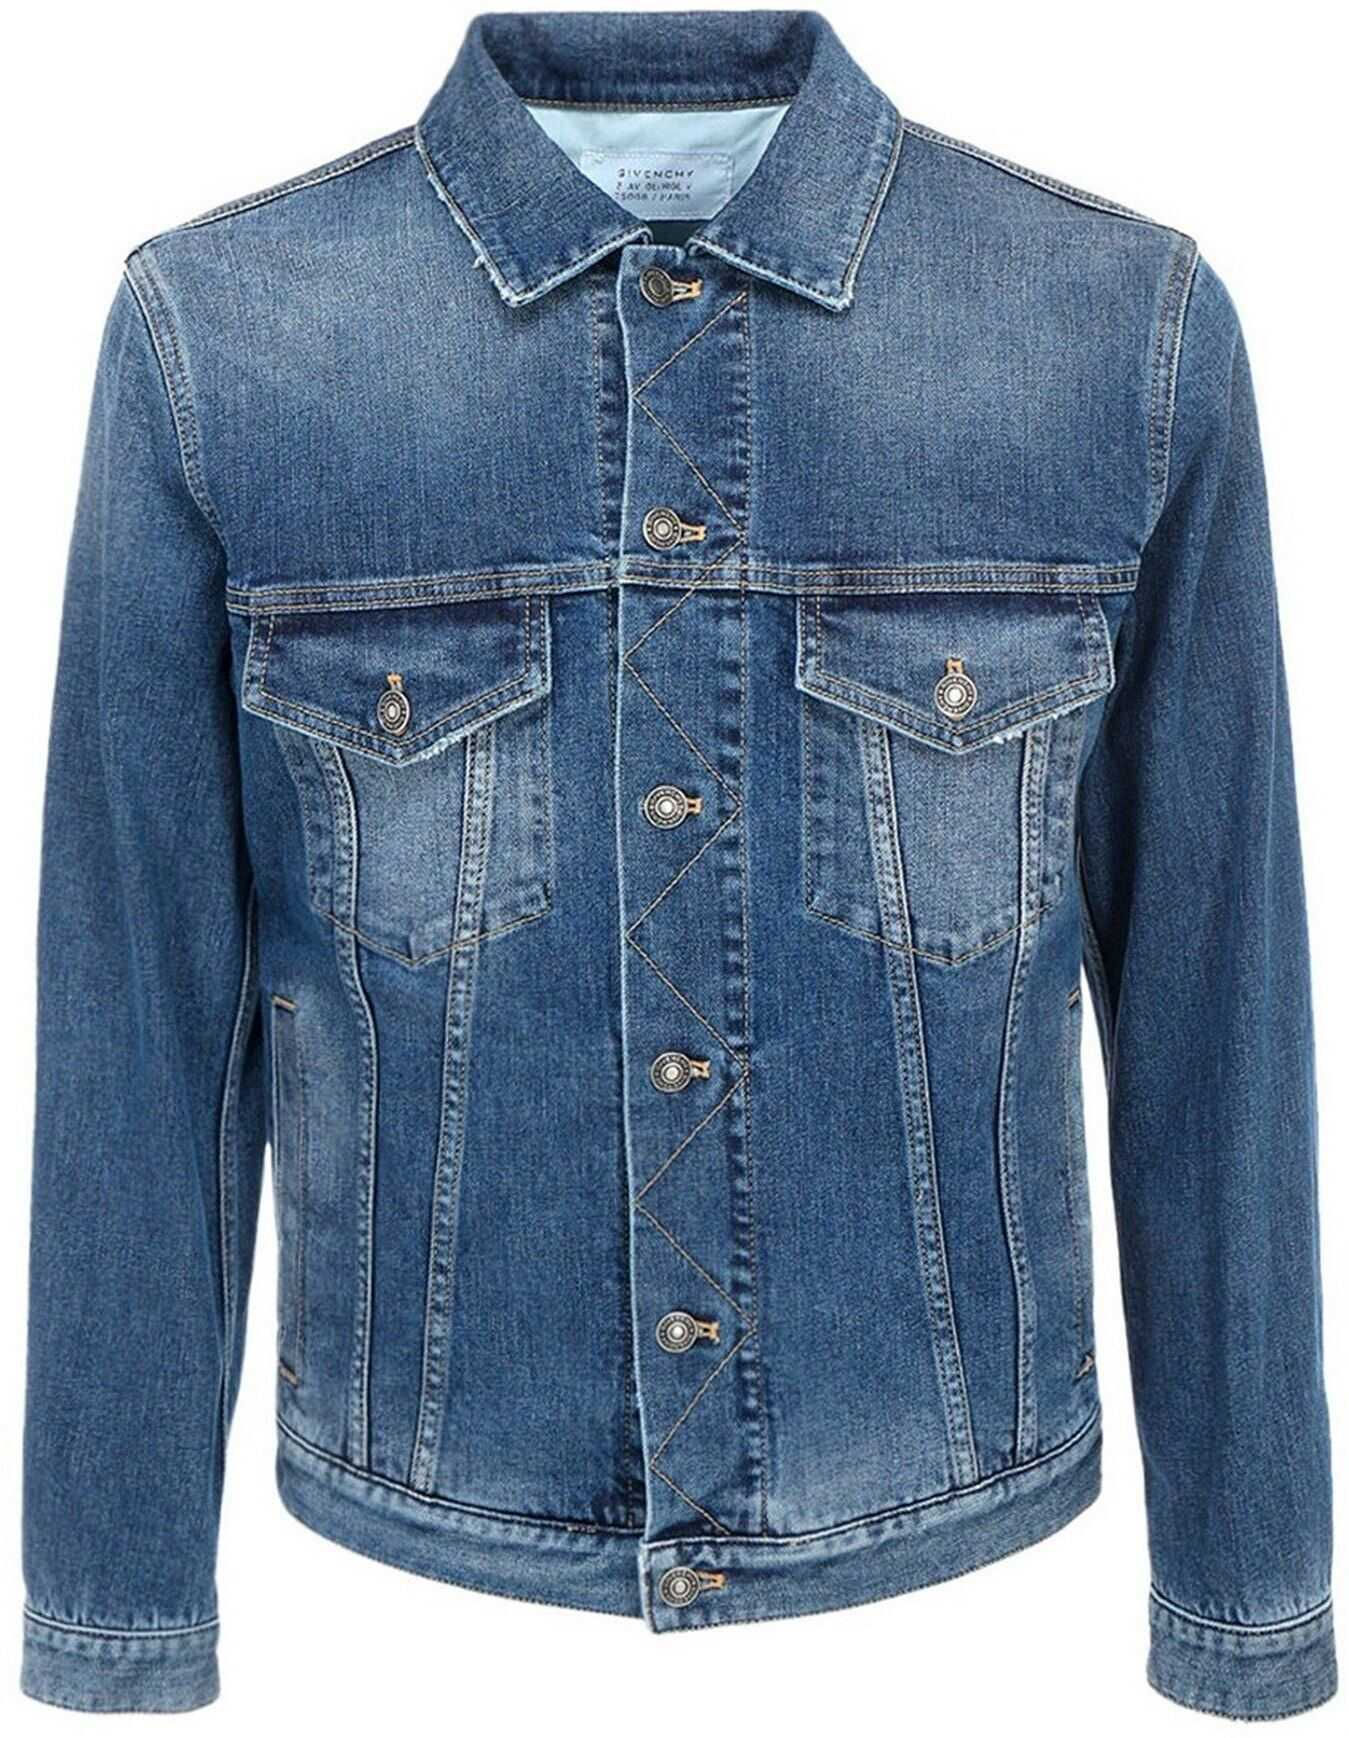 Givenchy Faded Denim Jacket In Blue Blue imagine